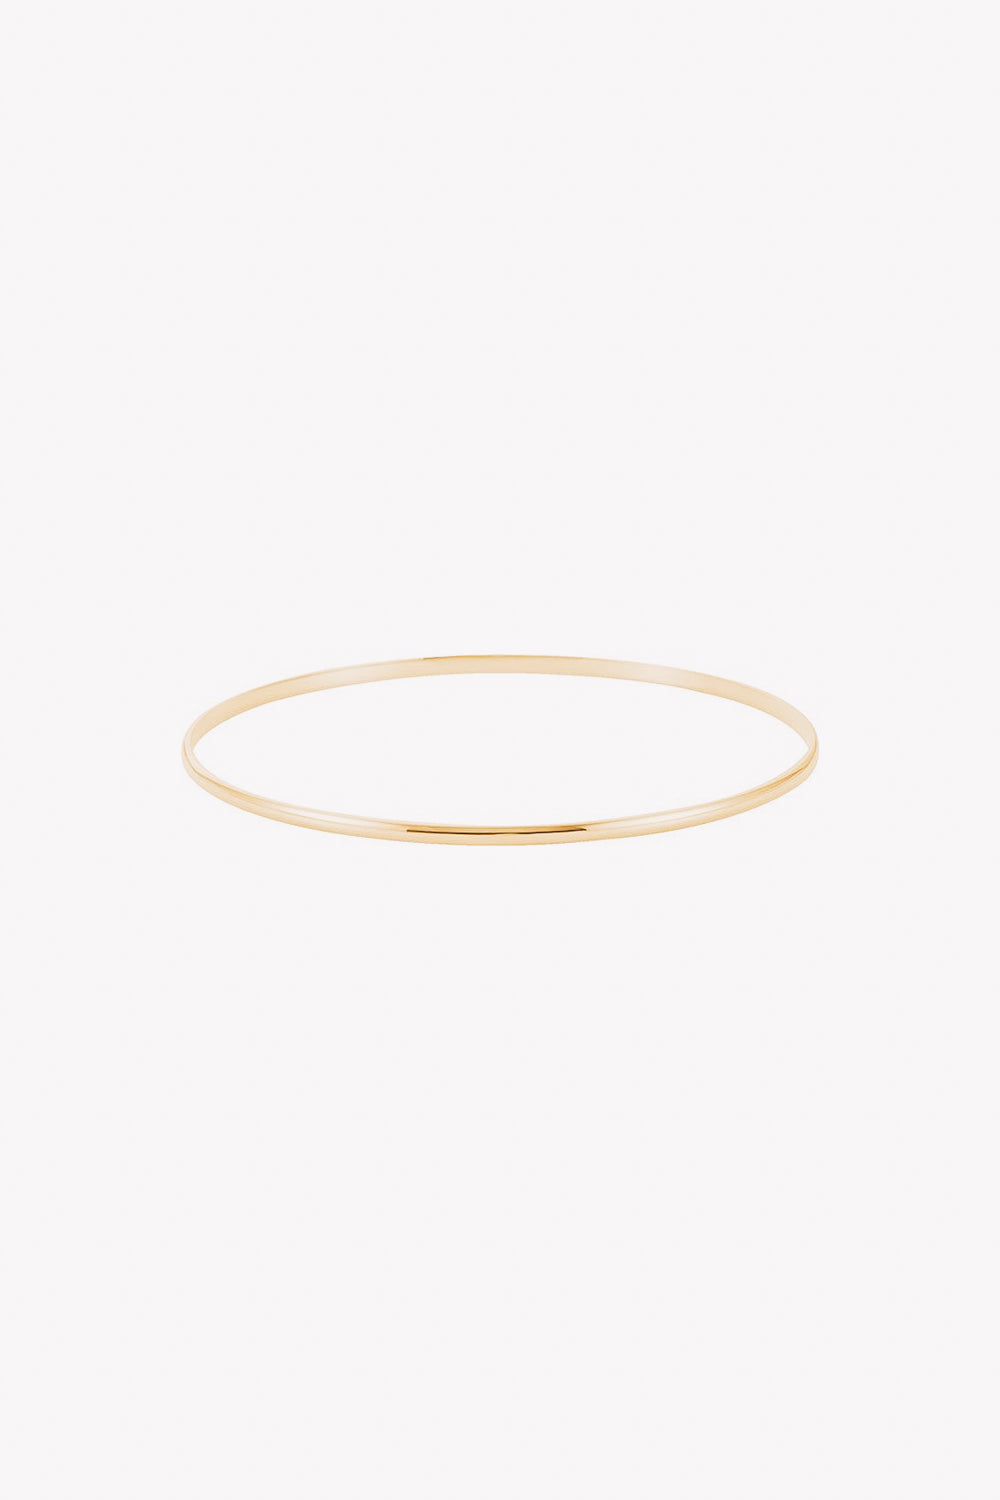 2 mm Half Round Bangle | 14K Gold | Janna Conner